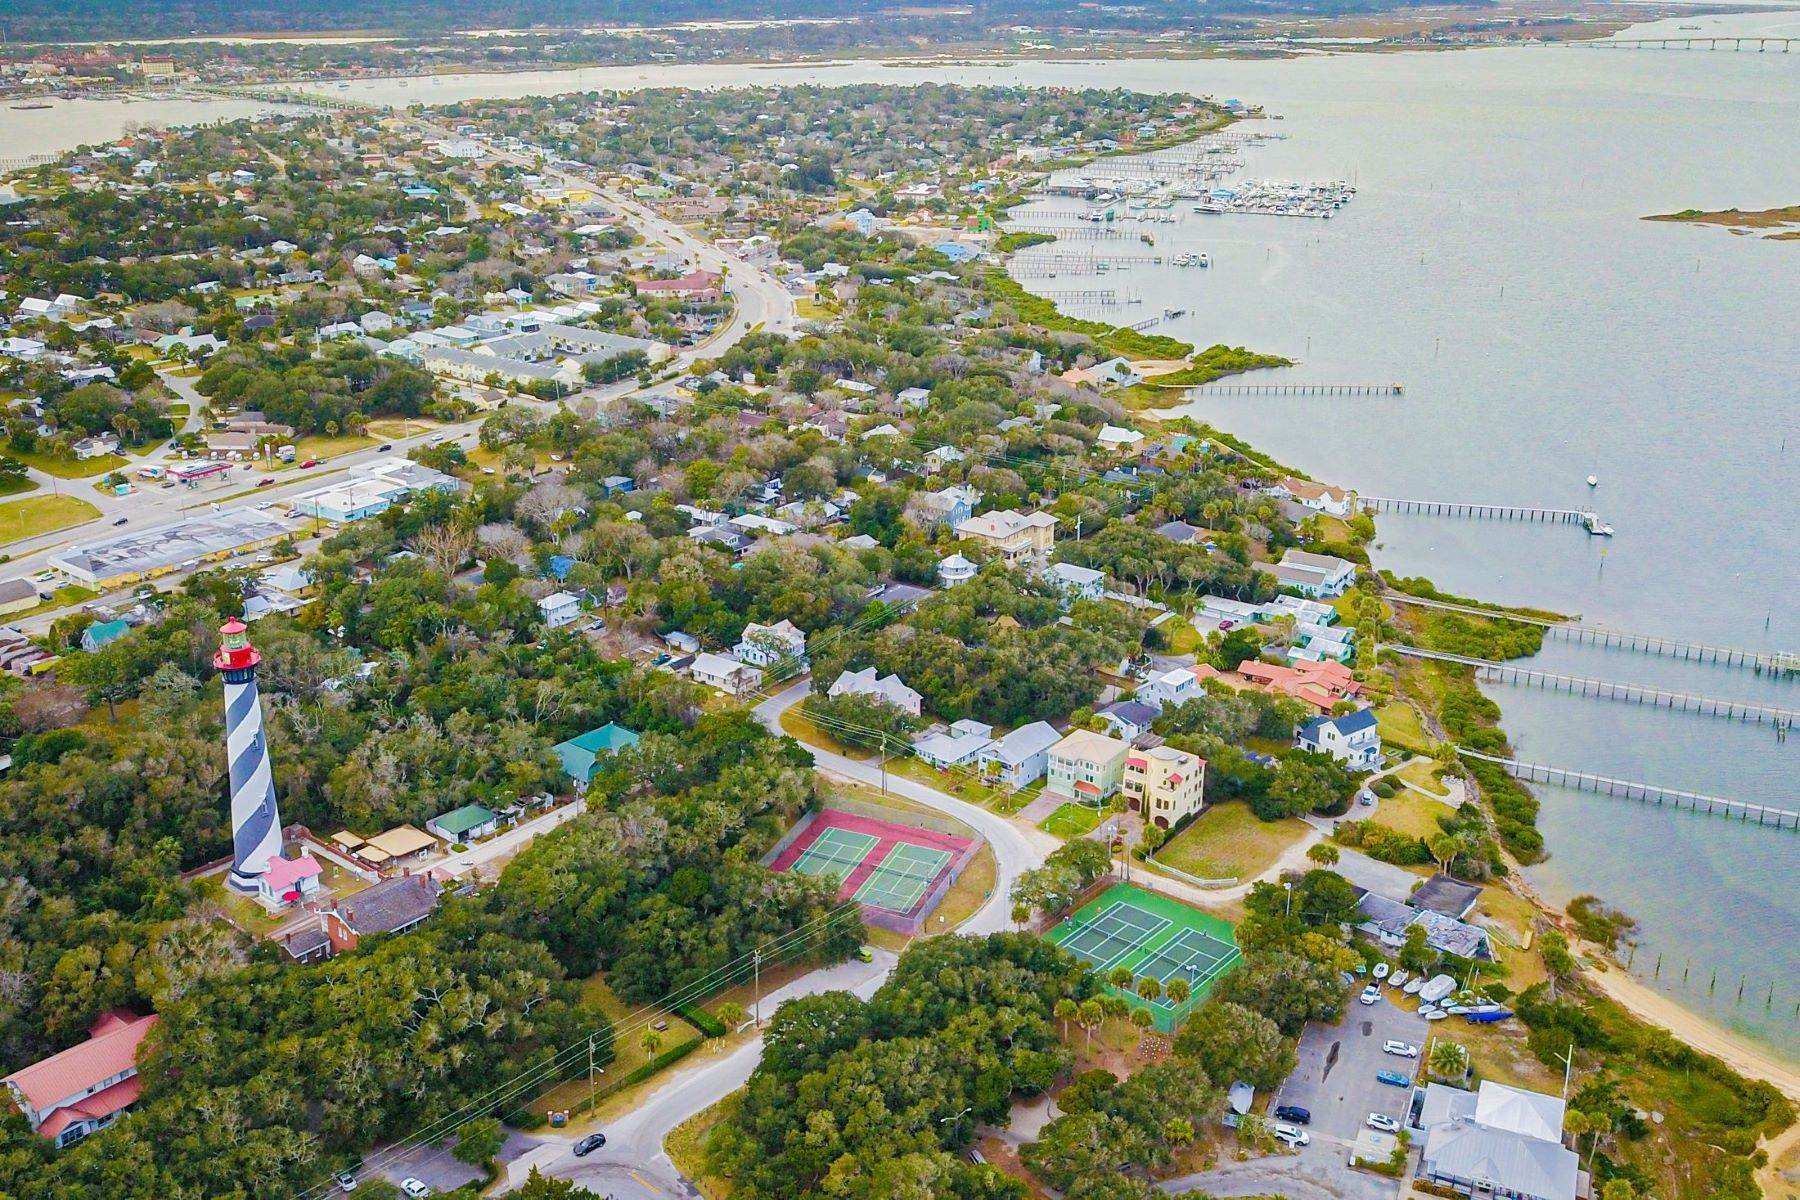 Single Family Homes for Sale at 102 E Carver Street, St. Augustine, FL 32080 102 E Carver Street St. Augustine, Florida 32080 United States